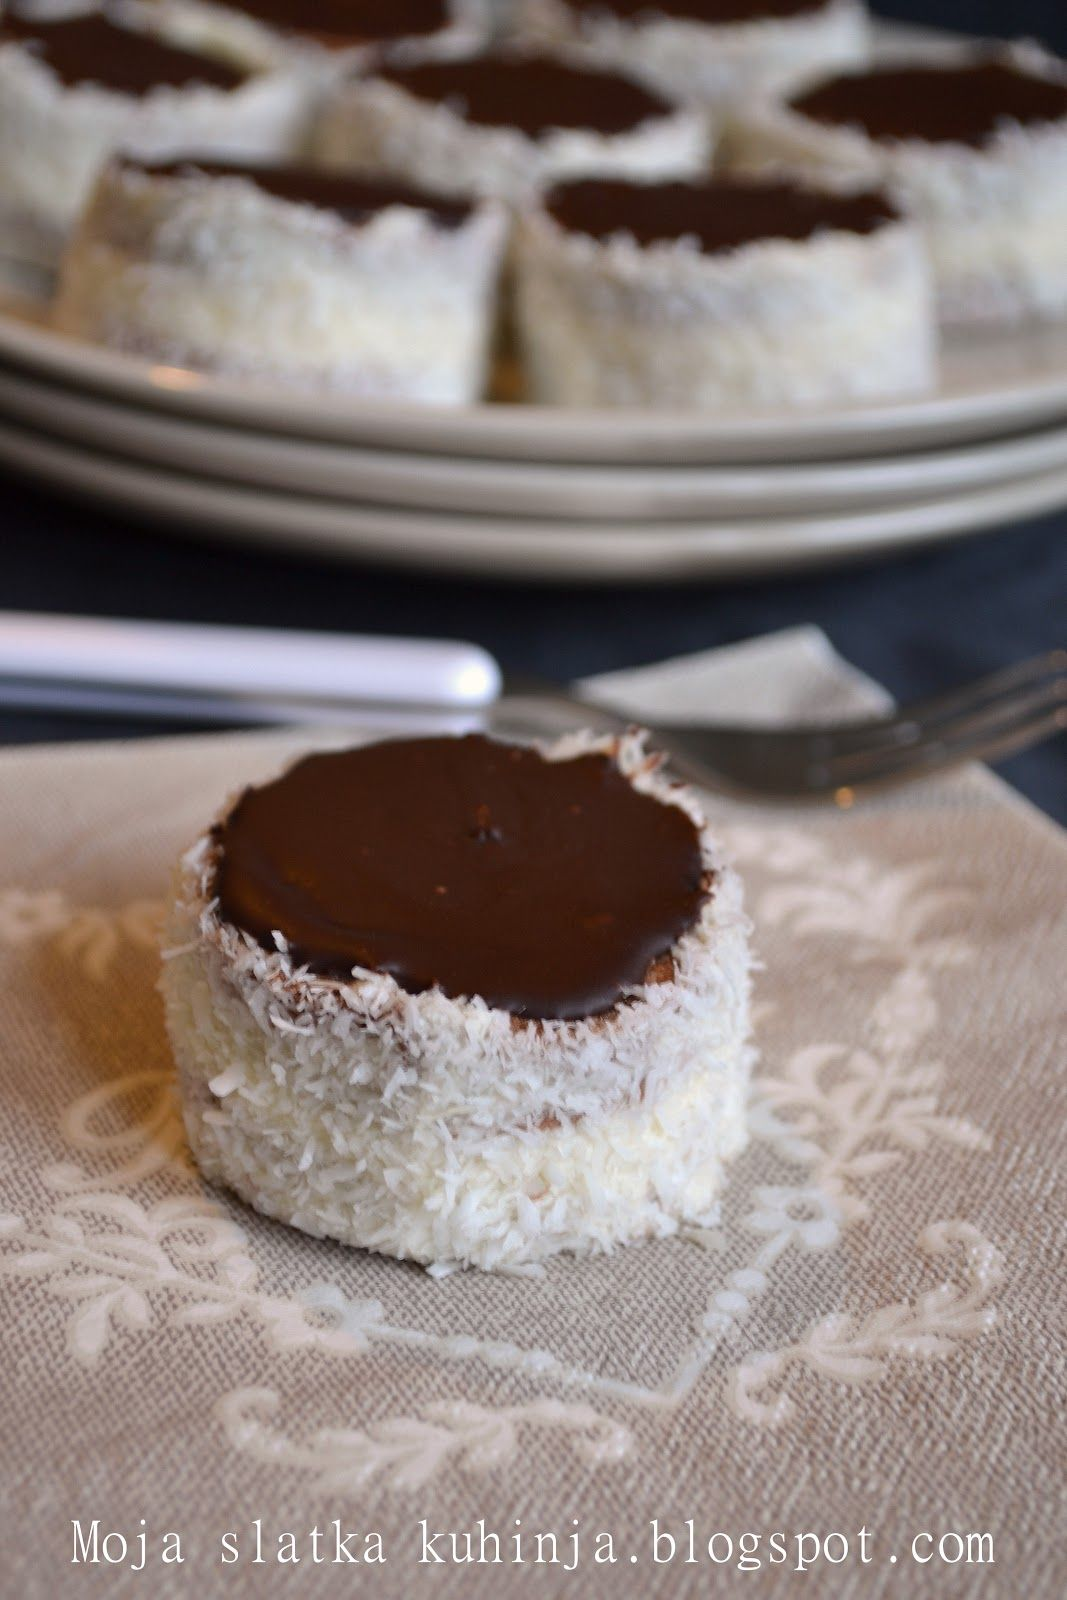 Ruske kape (Trans. Russian Caps) are a type of cake dessert served in ex-Yugoslavia countries, especially in Serbia, Bosnia, and Croatia. It usually comes in a 6-inch-wide, round serving and includes coconut around the edge or sometimes crushed walnuts. The top is usually chocolate drizzled with vanilla. The center includes layers of alternating vanilla, chocolate, and sometimes a mocha flavor.  This dessert comes served chilled,  people eat it like a cupcake with the hands.